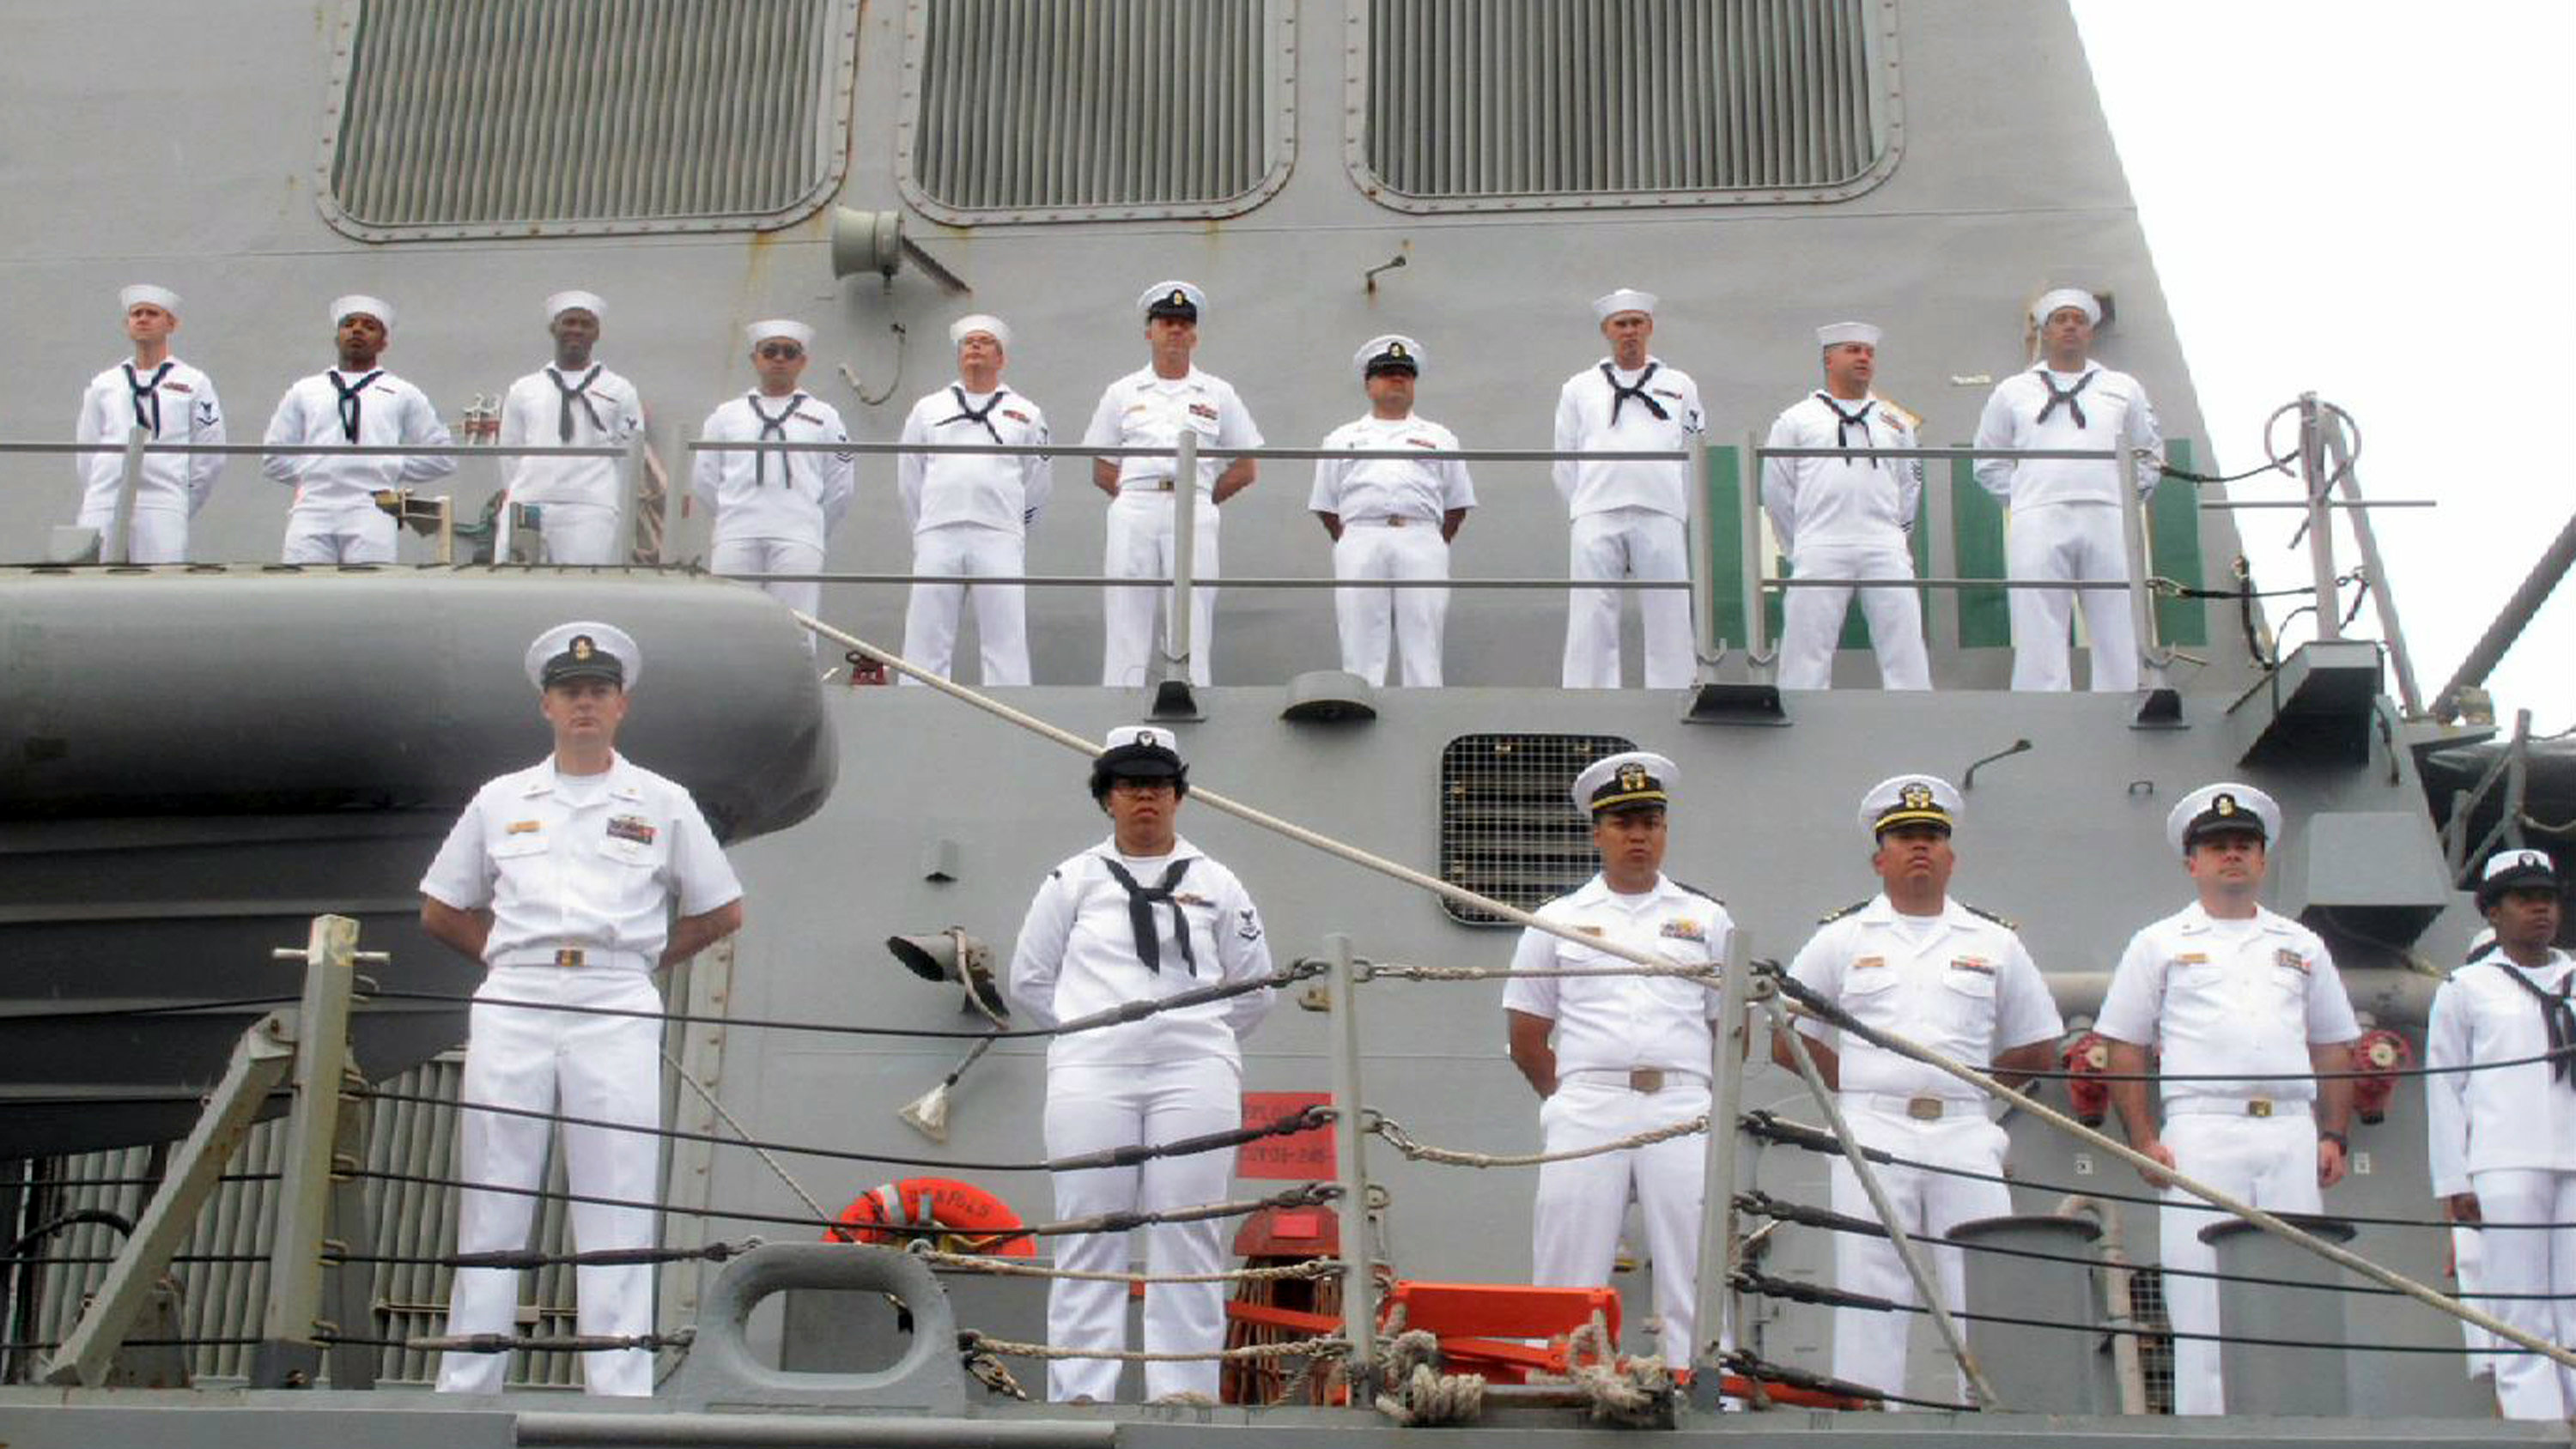 U.S. Navy sailors stand on deck as the guided missile destroyer USS Benfold arrives in port in Qingdao in eastern China's Shandong Province.